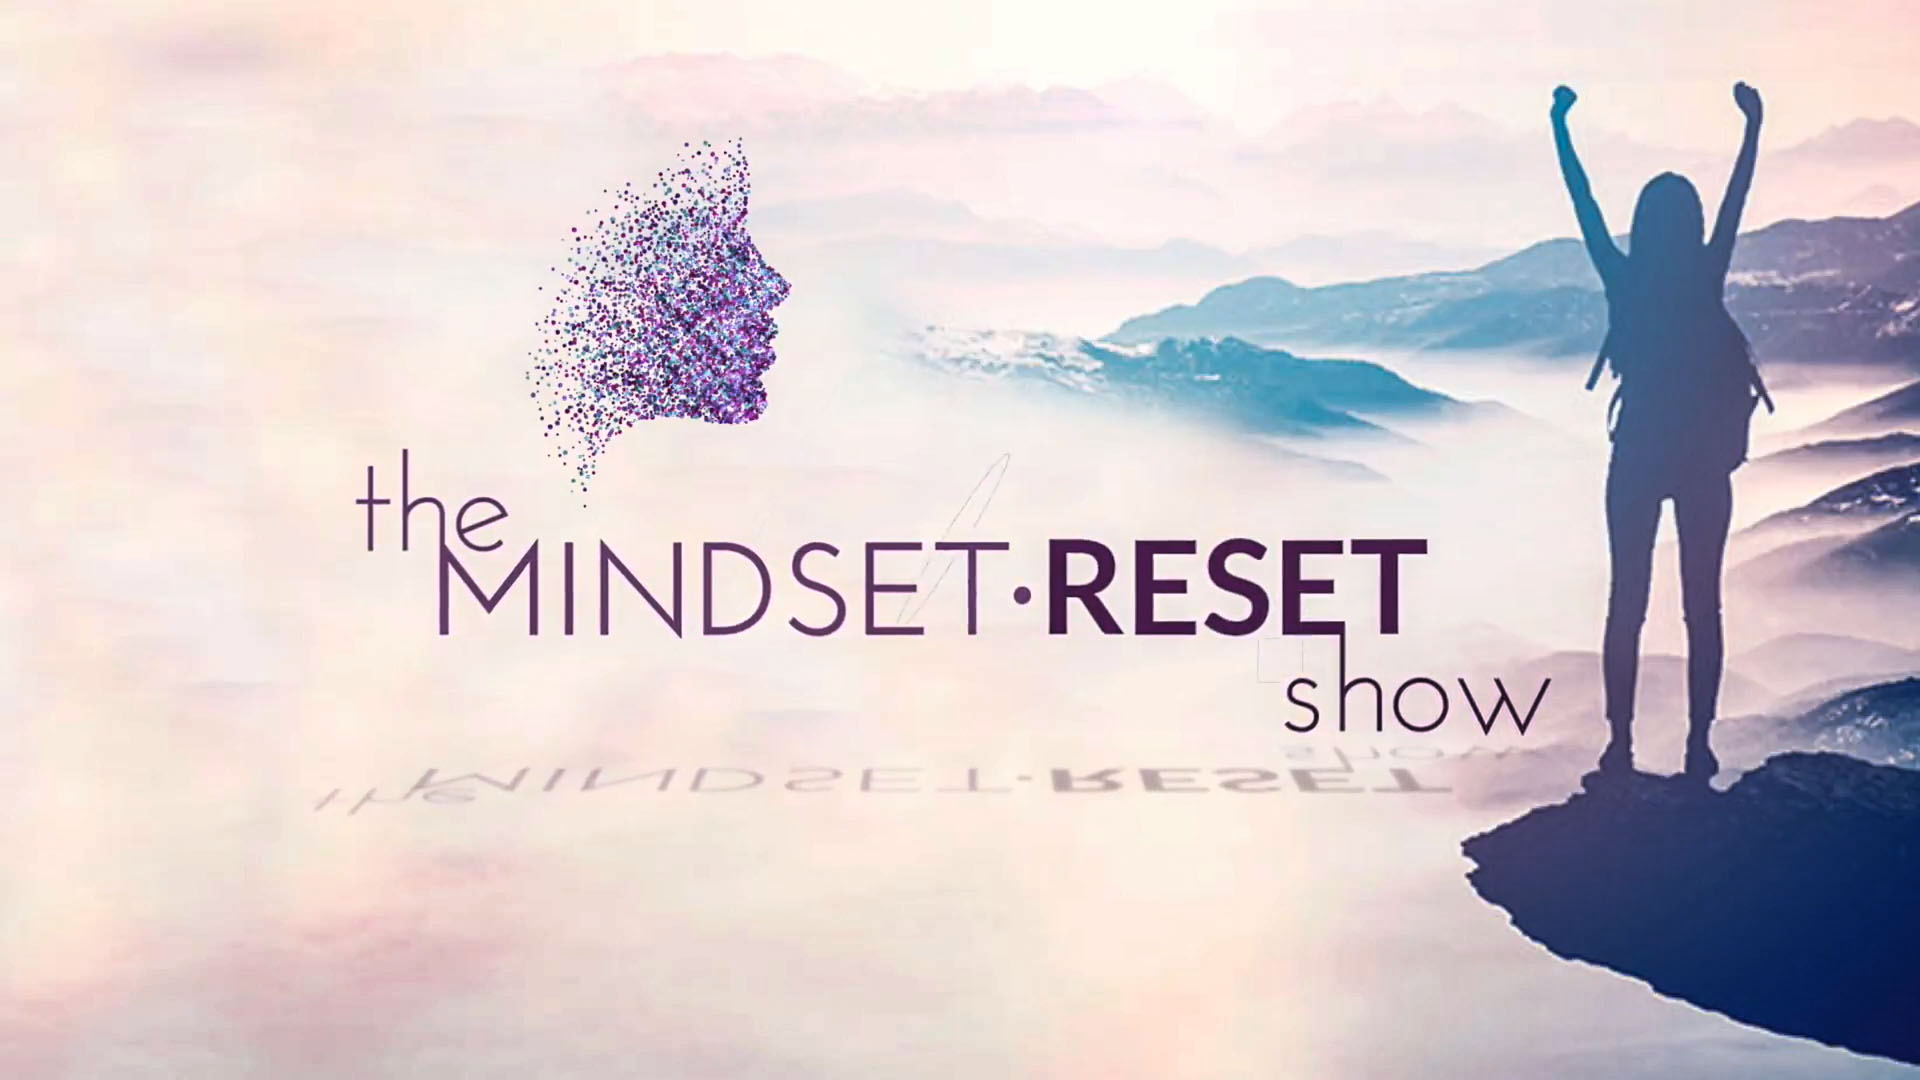 The Mindset Reset Show